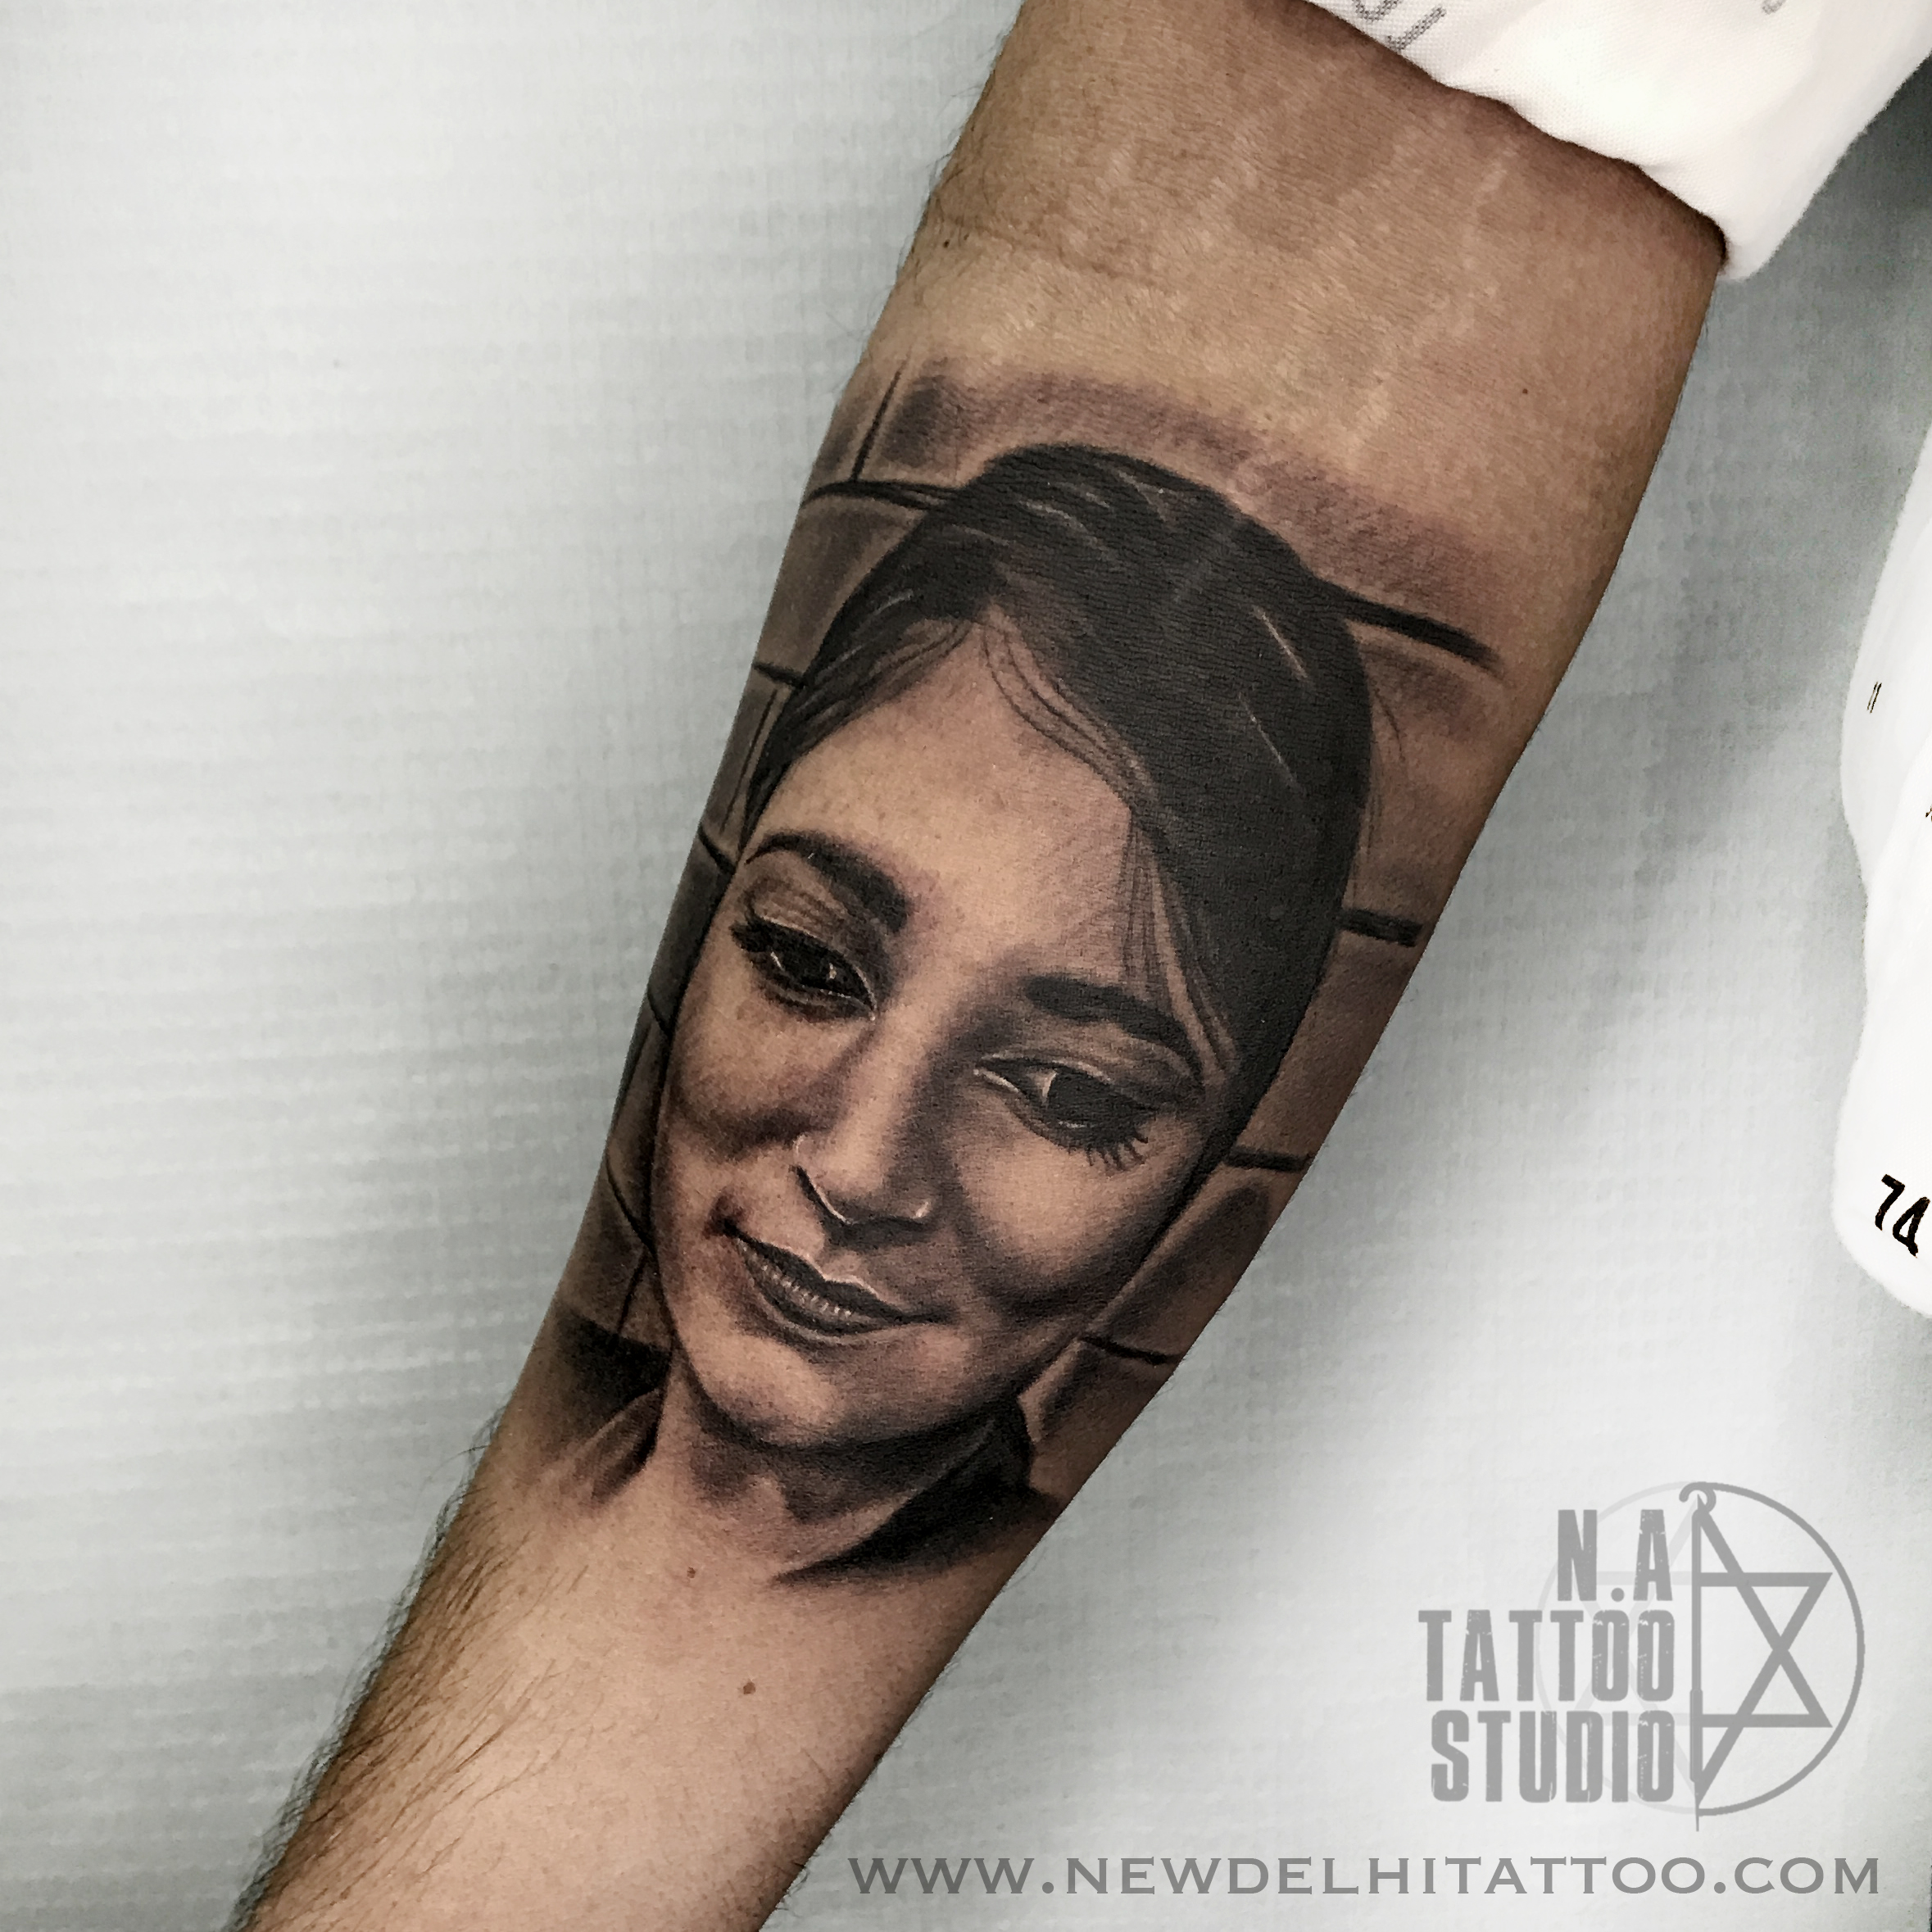 Portrait tattoo New Delhi Tattoo